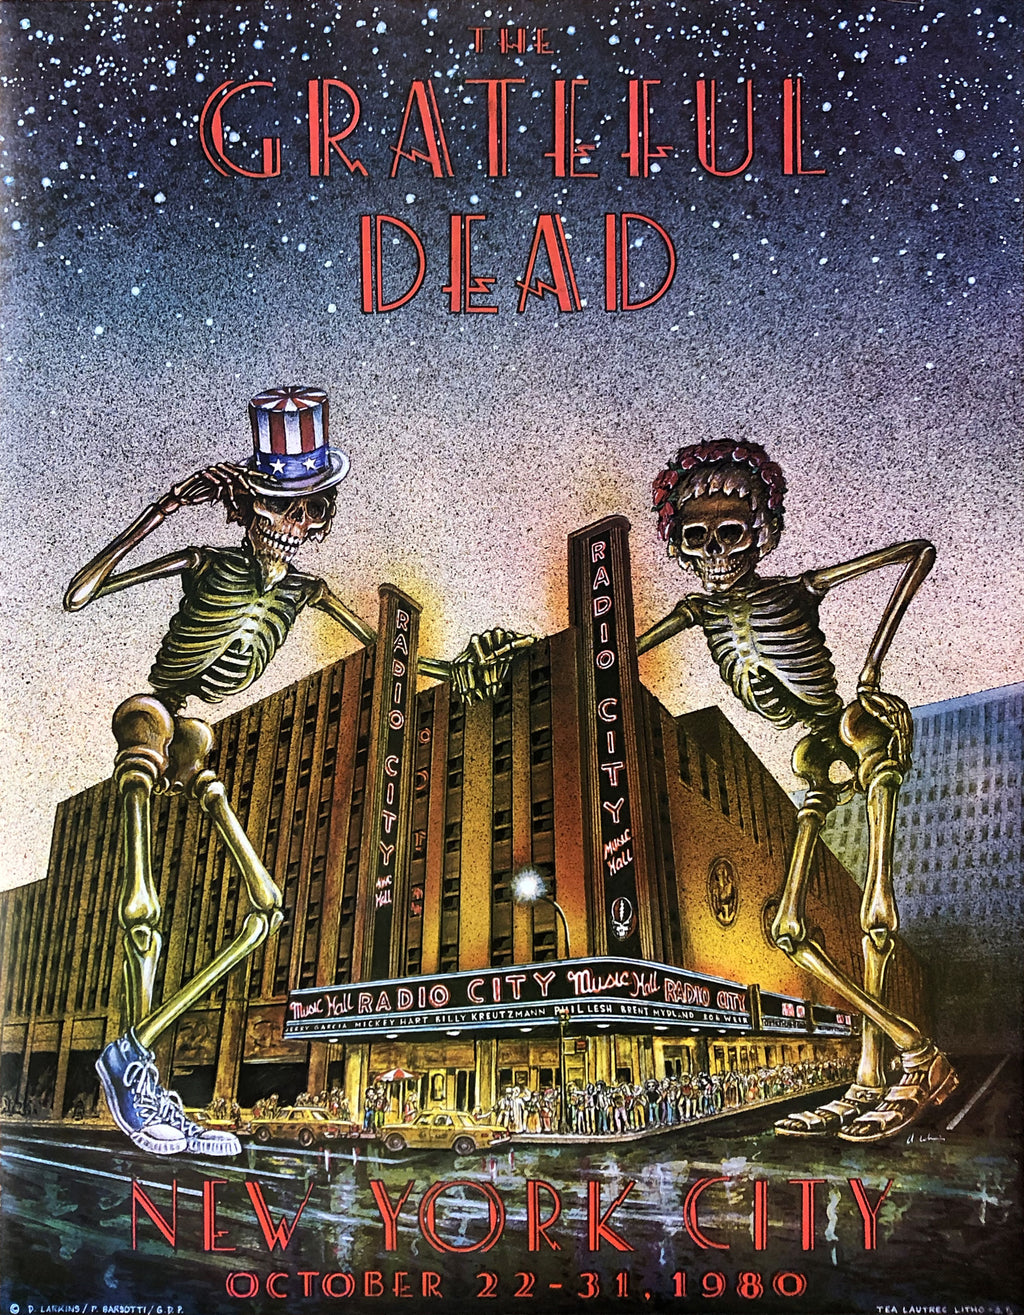 1980-10-22 Grateful Dead Radio City